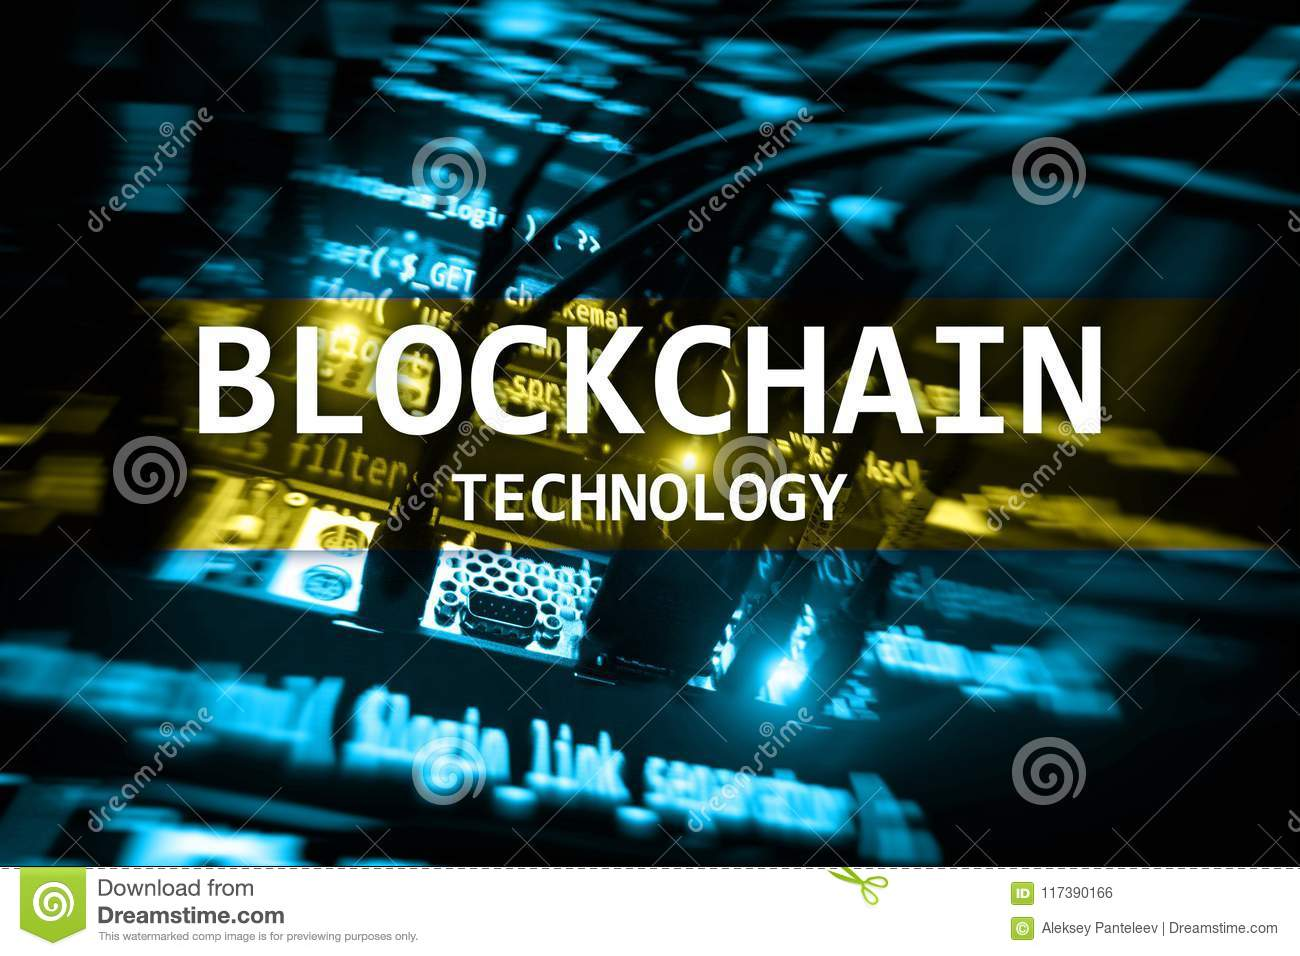 Blockchain technology, cryptocurrency mining